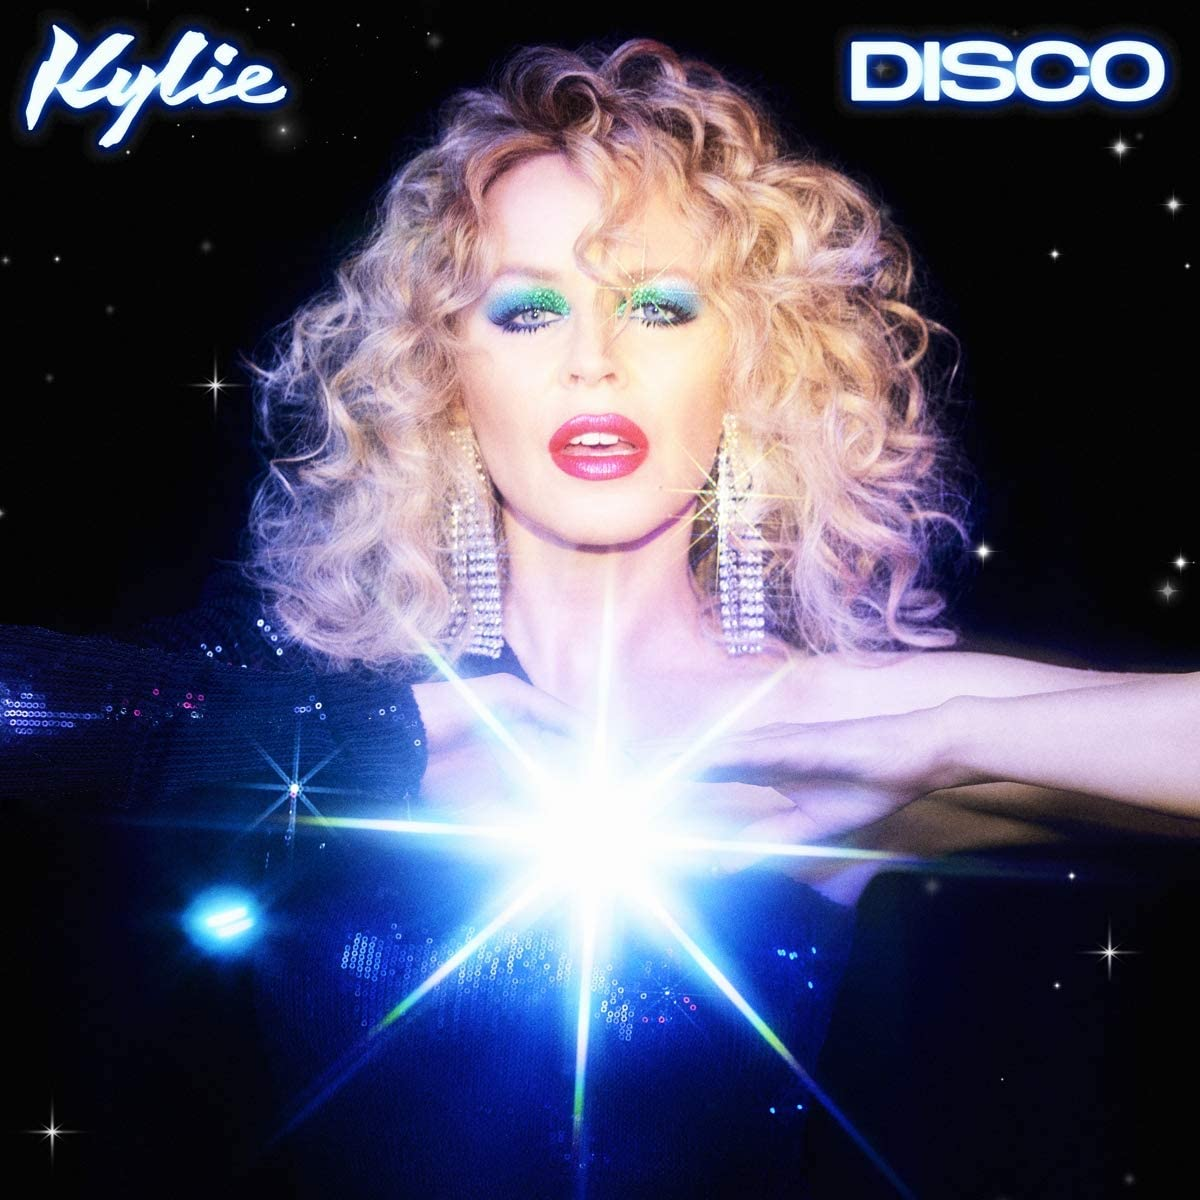 DISCO by Kylie Minogue: Amazon.co.uk: Music